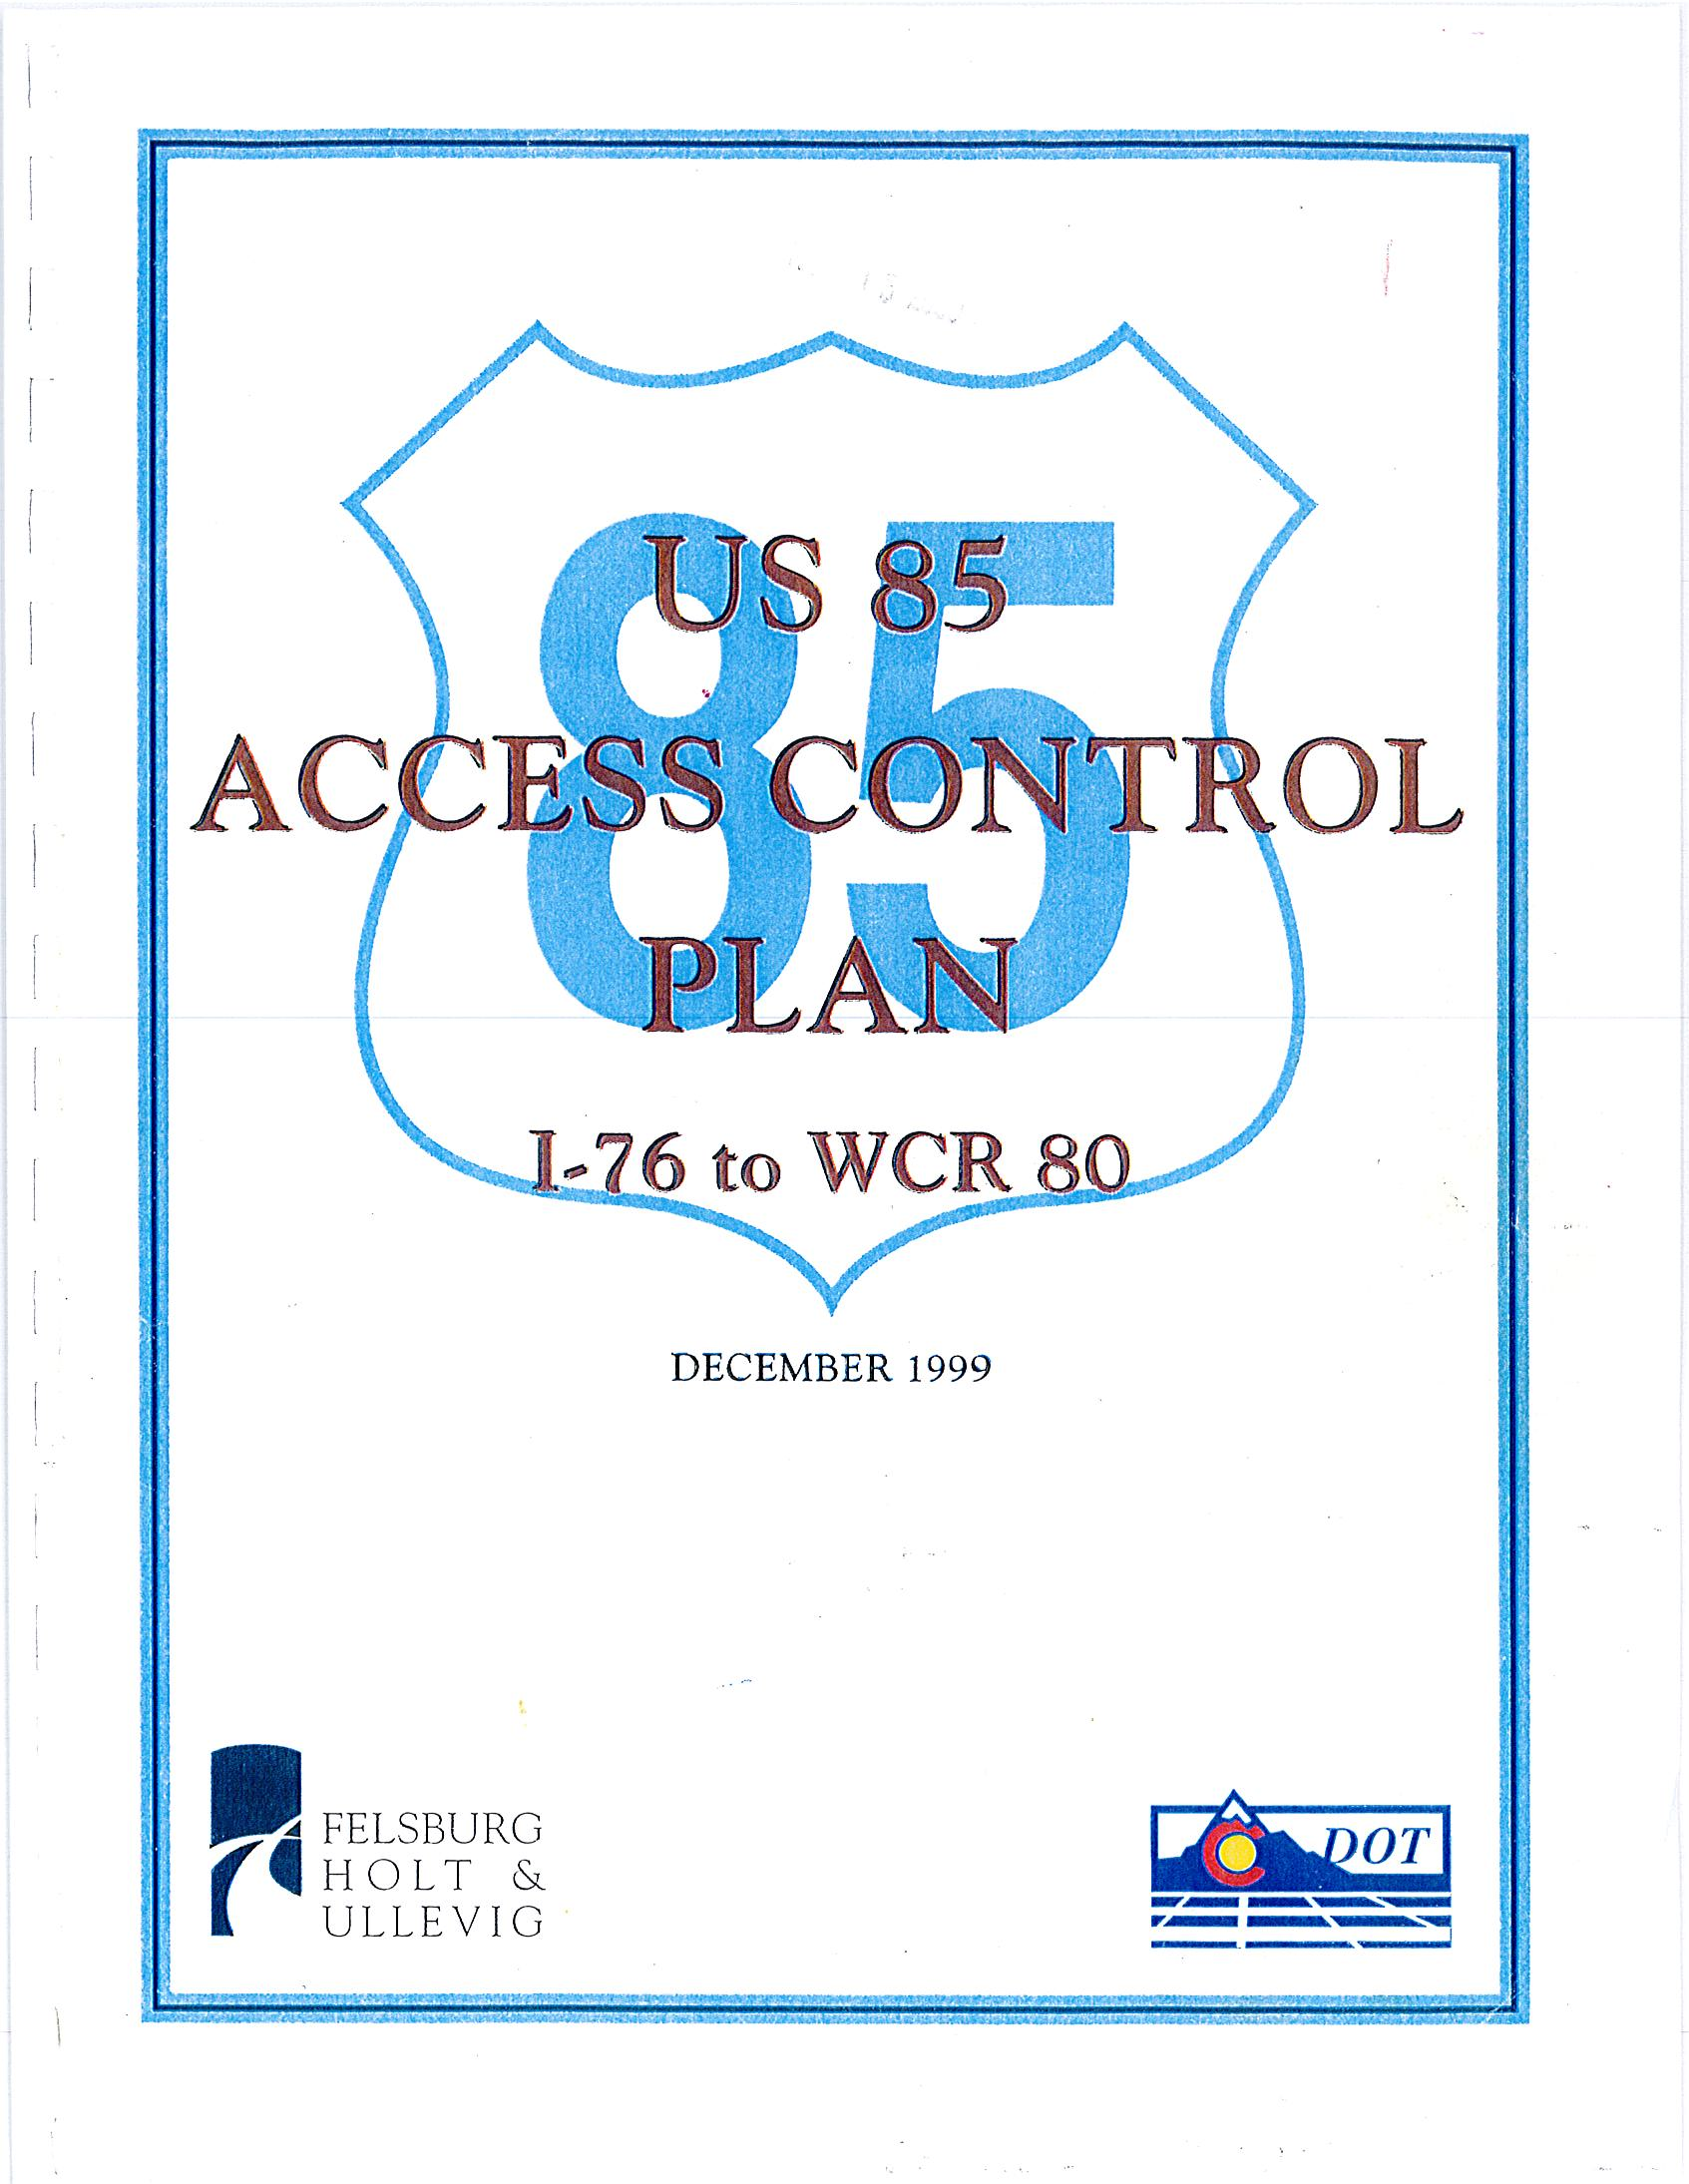 US 85 Access Control Plan Cover